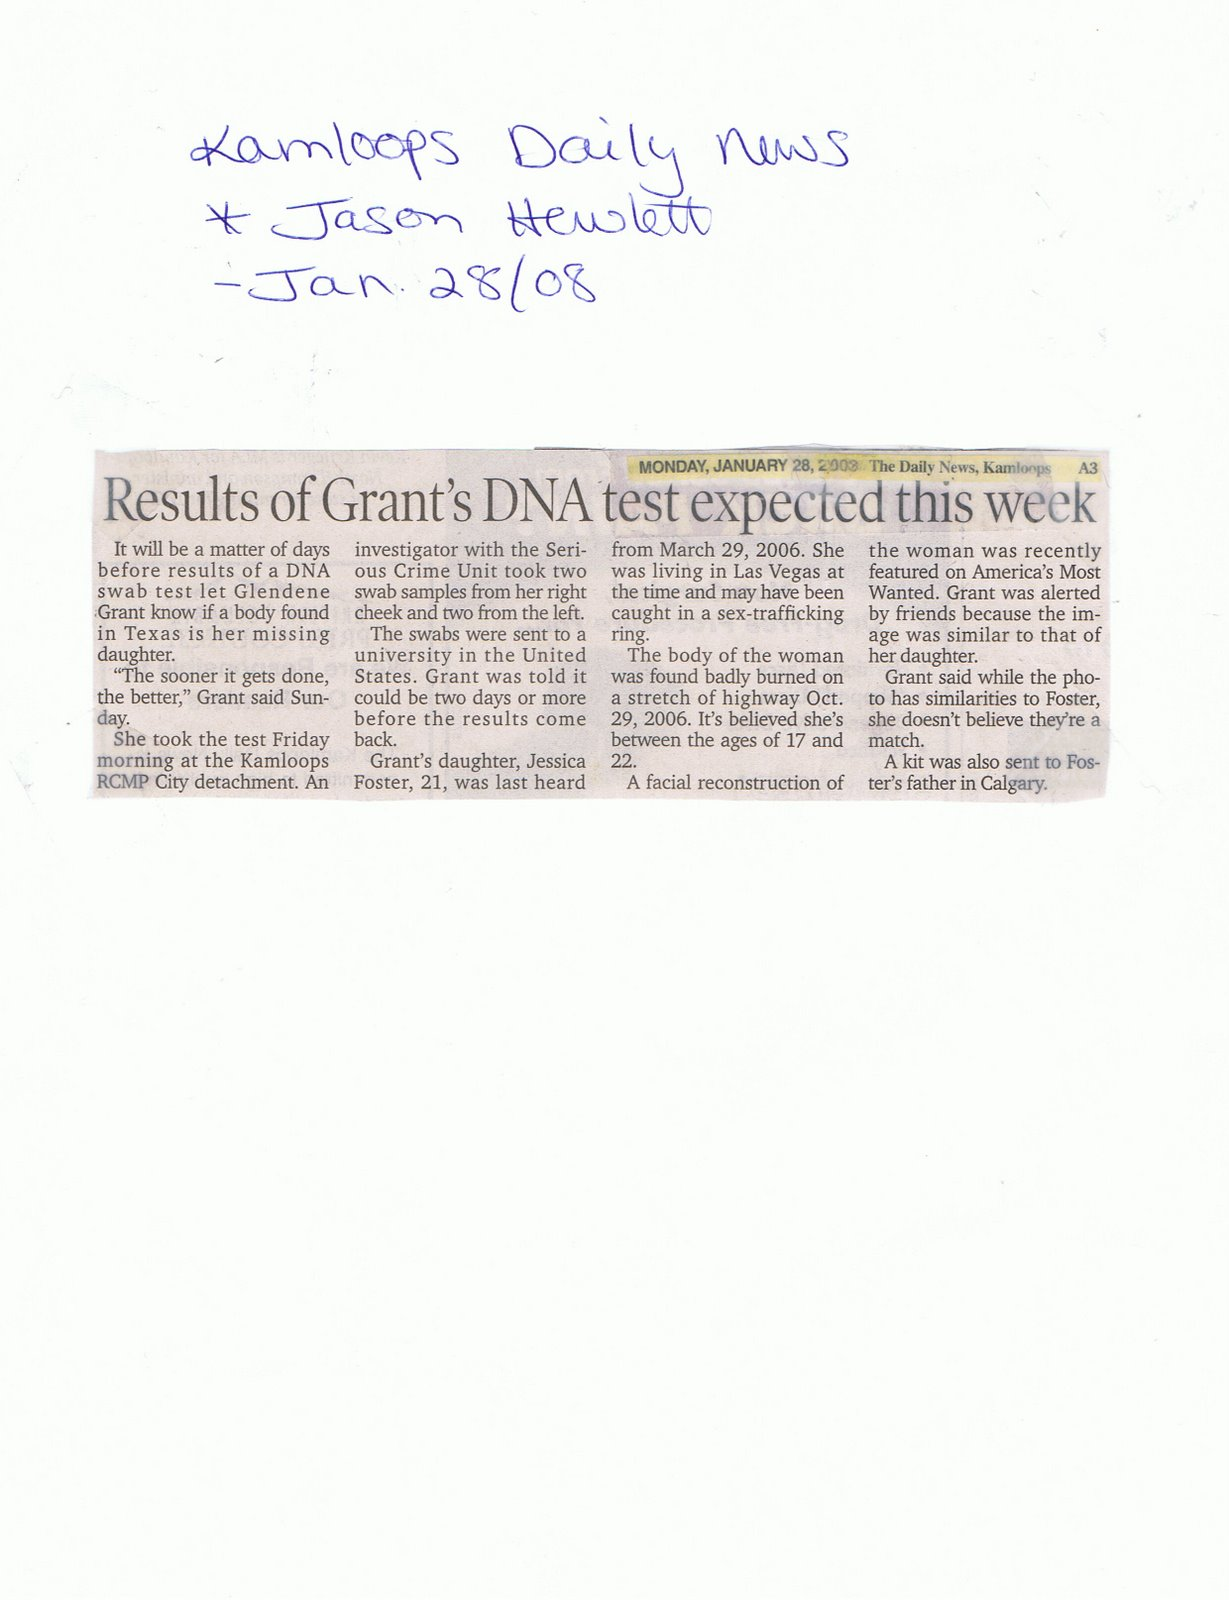 [2008-01-28+-+KDN-Results+of+Grant's+DNA+test+expected+this+week-JHewlett.jpg]